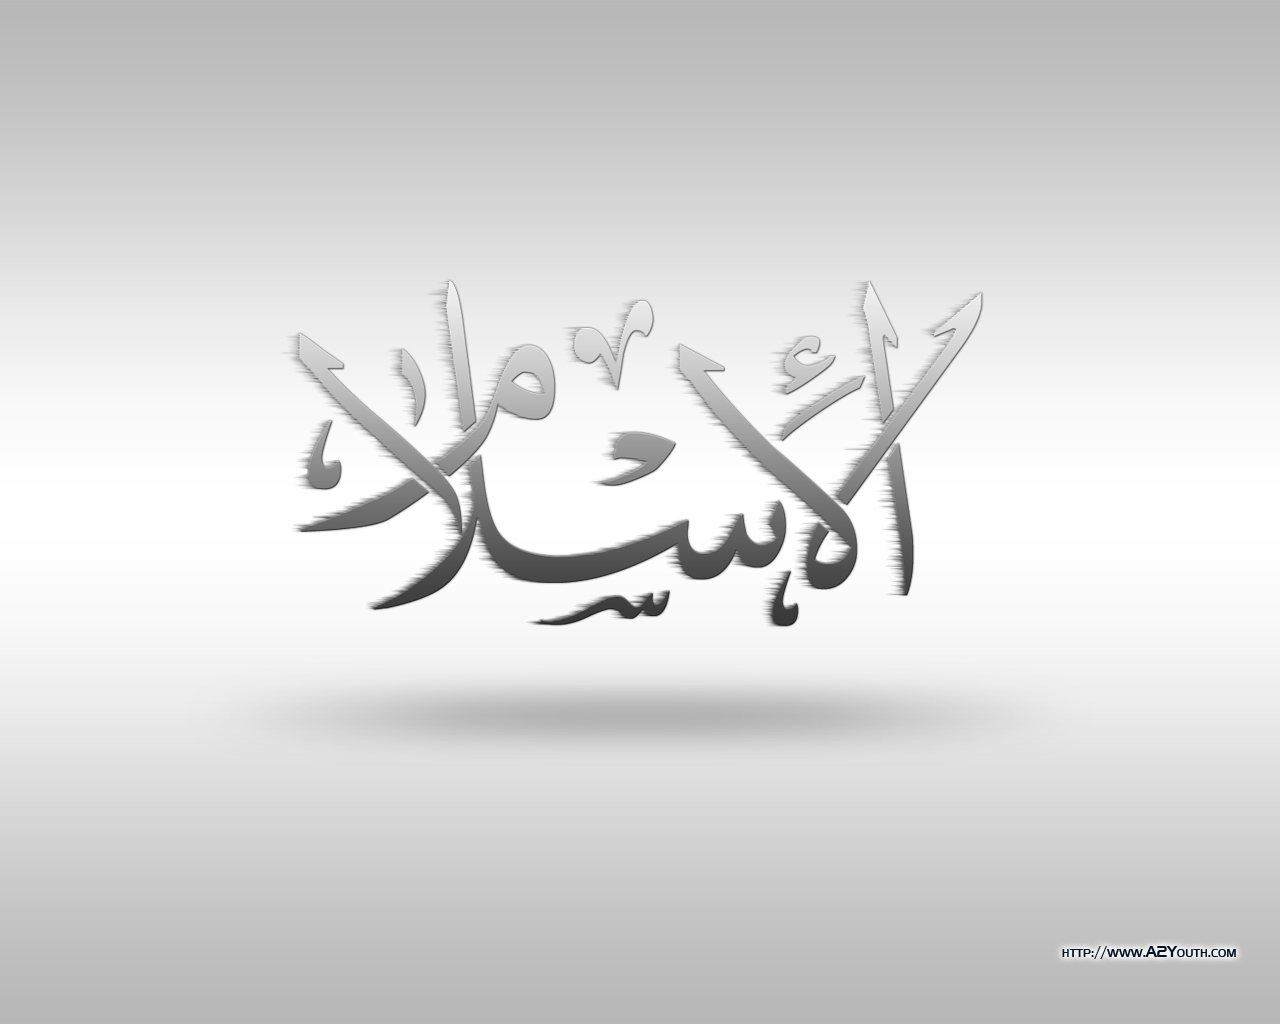 Al-Islam - Calligraphy - Islamic Wallpapers - A2Youth.com